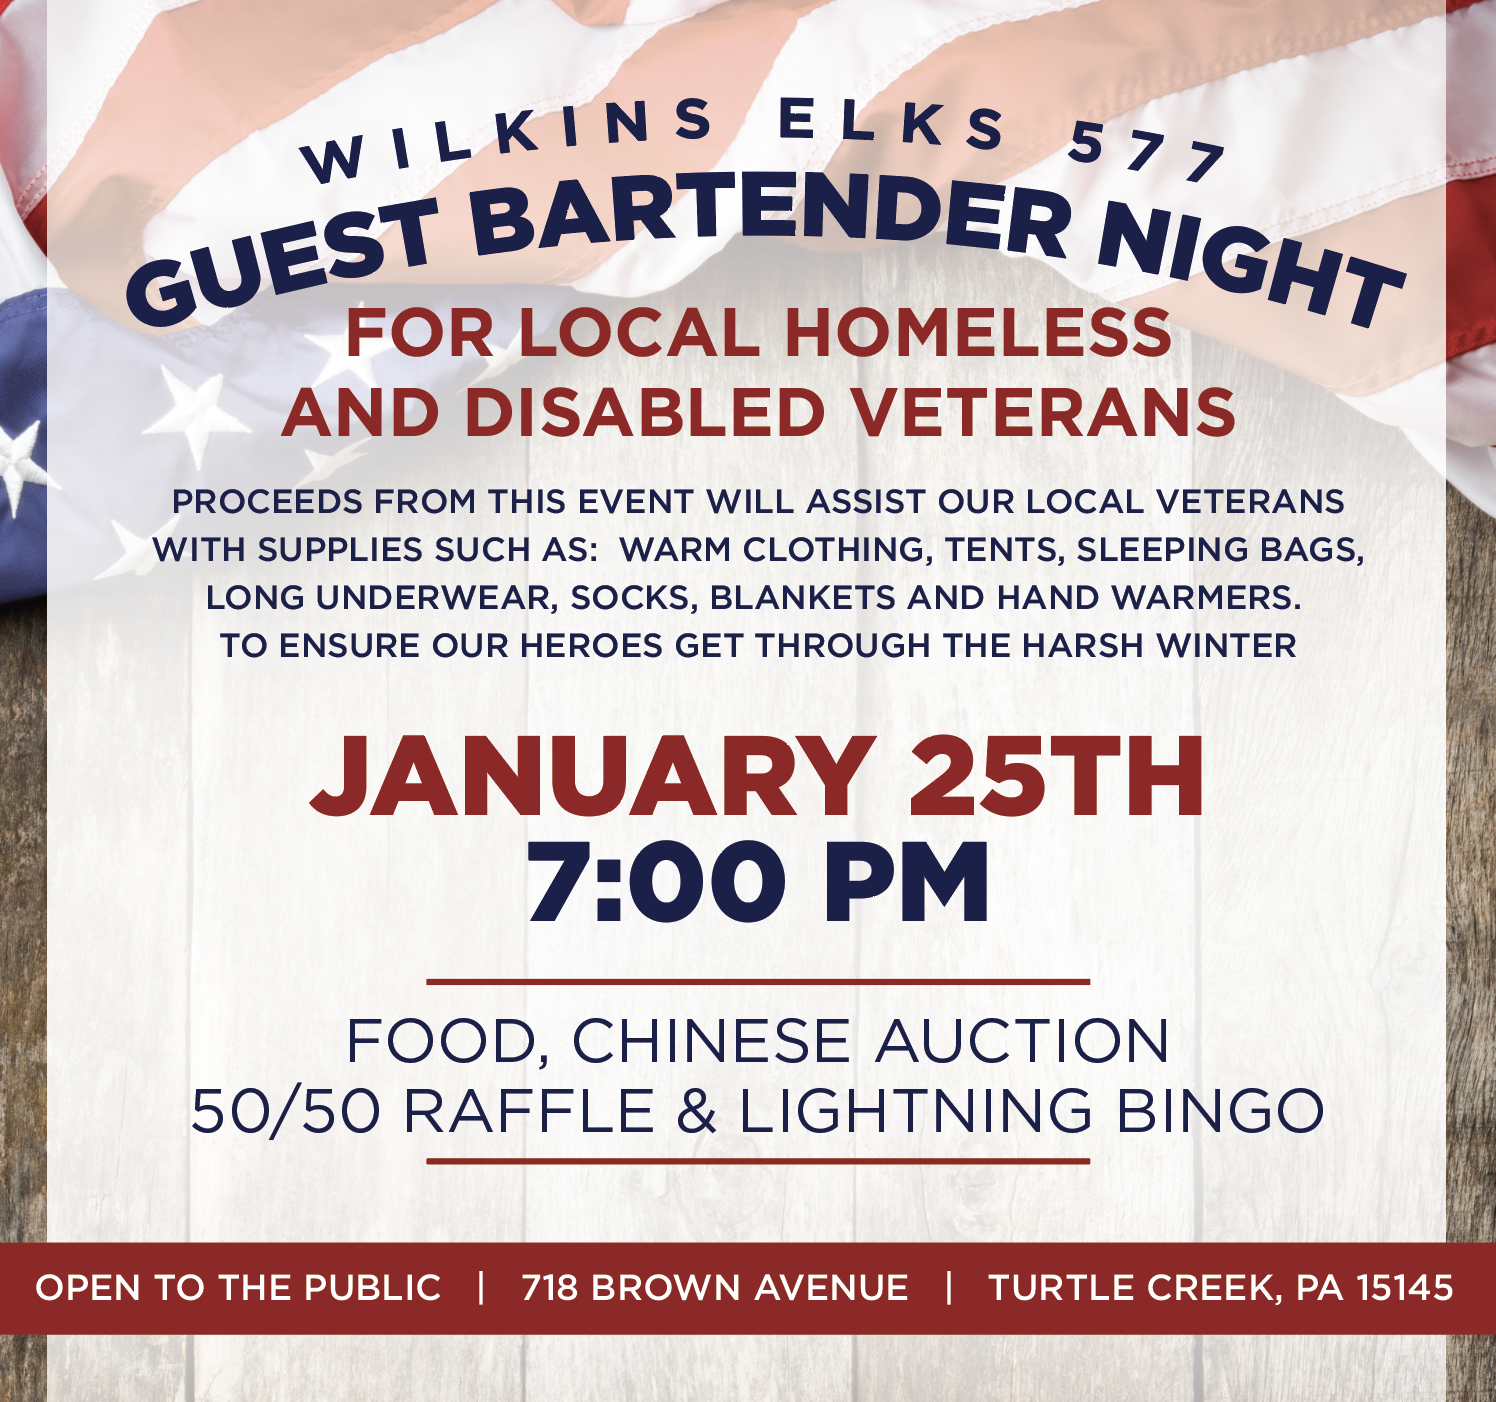 Guest Bartender Night for Local Homeless & Disabled Veterans